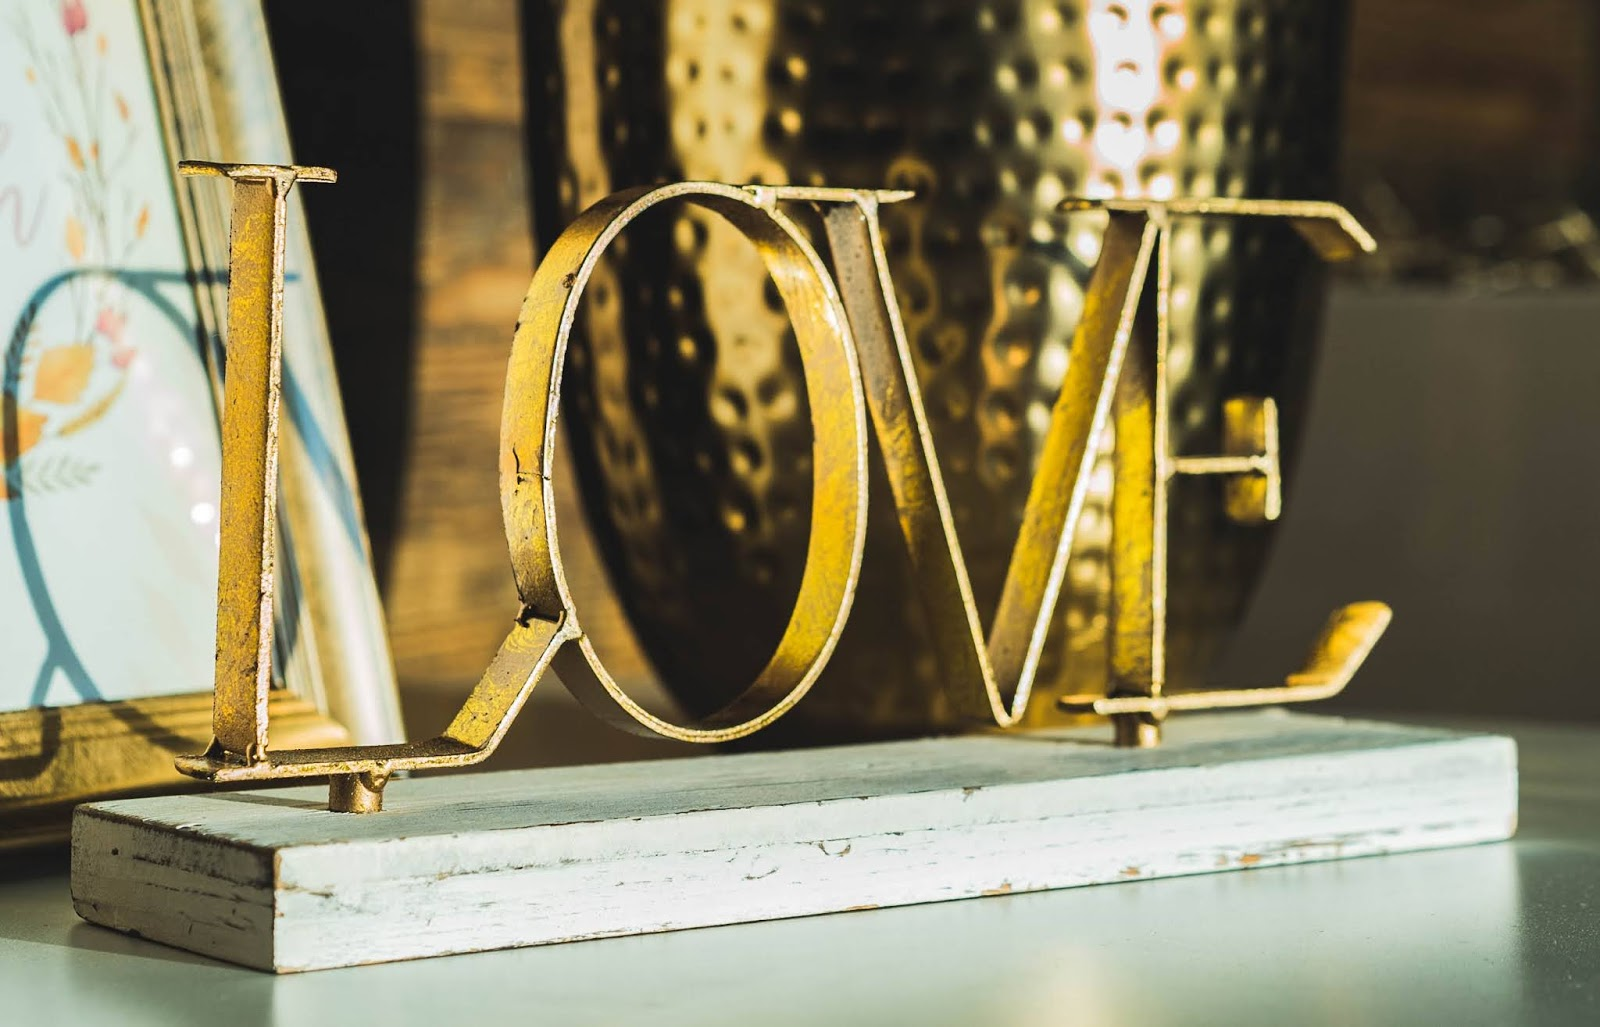 gold love freestanding letters table decor on top of white surface, love images